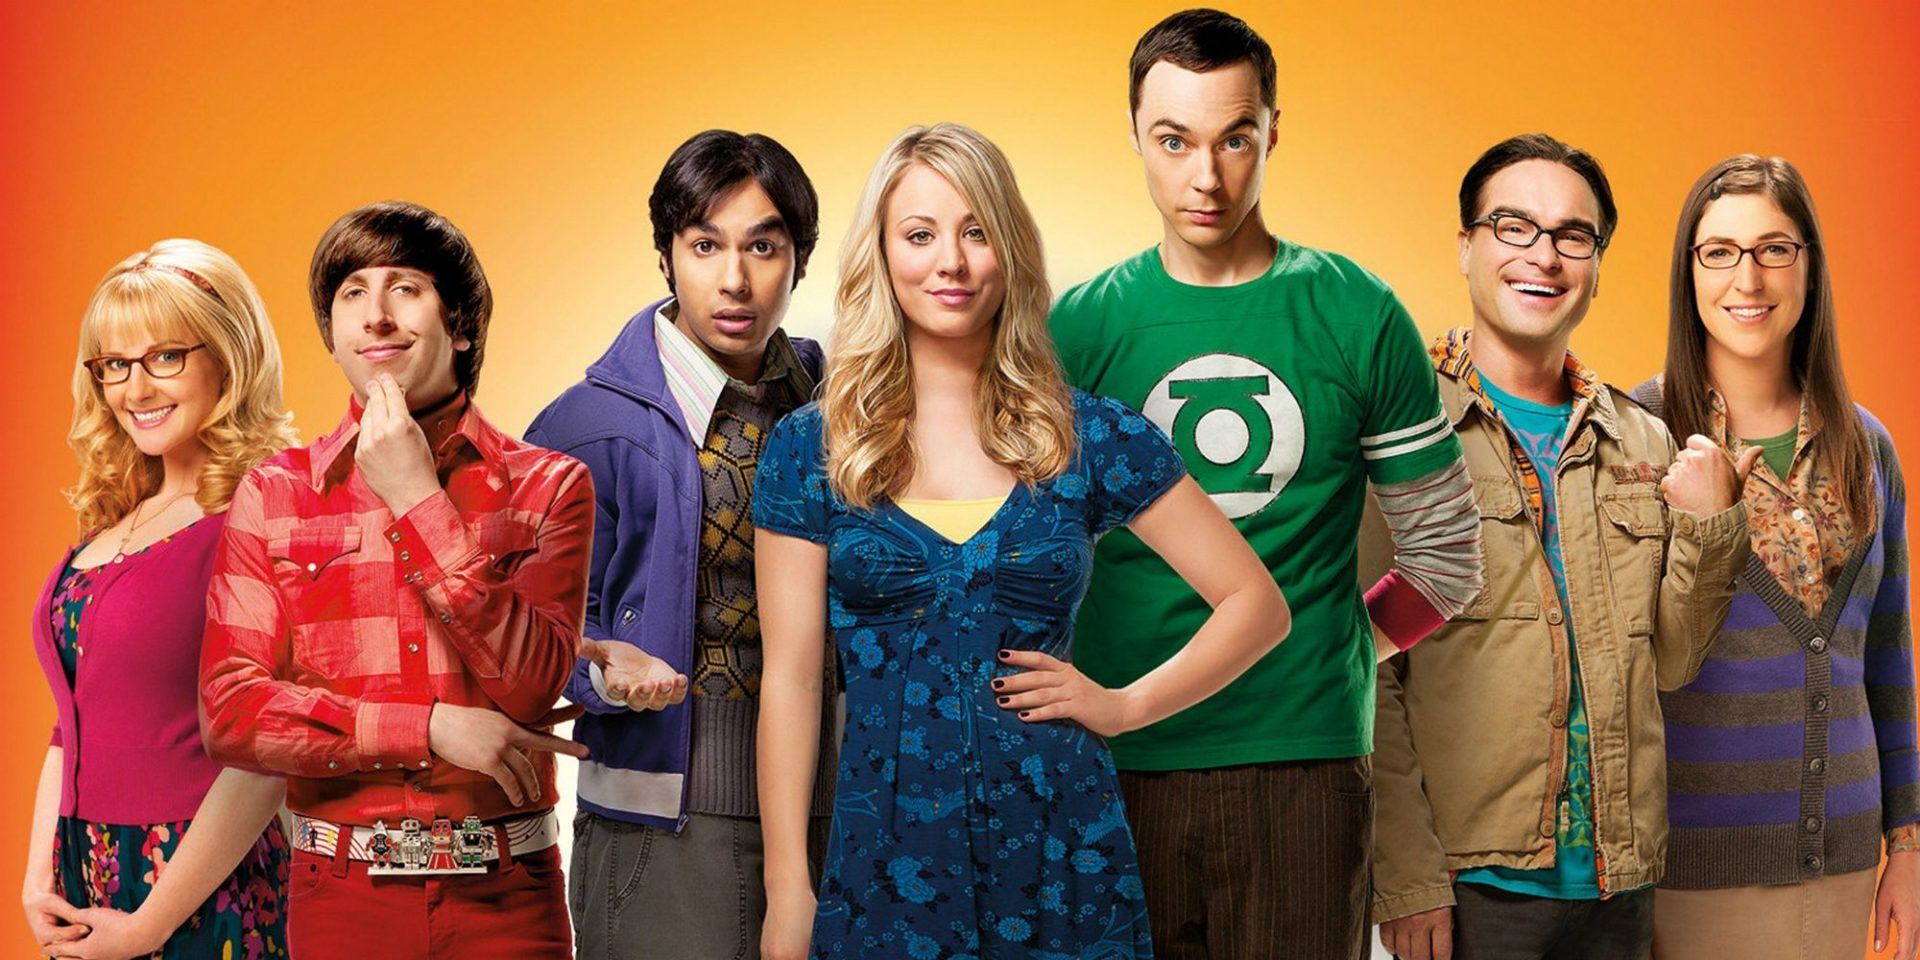 https://quinto-canal.com/wp-content/uploads/2021/05/the-big-bang-theory.jpg